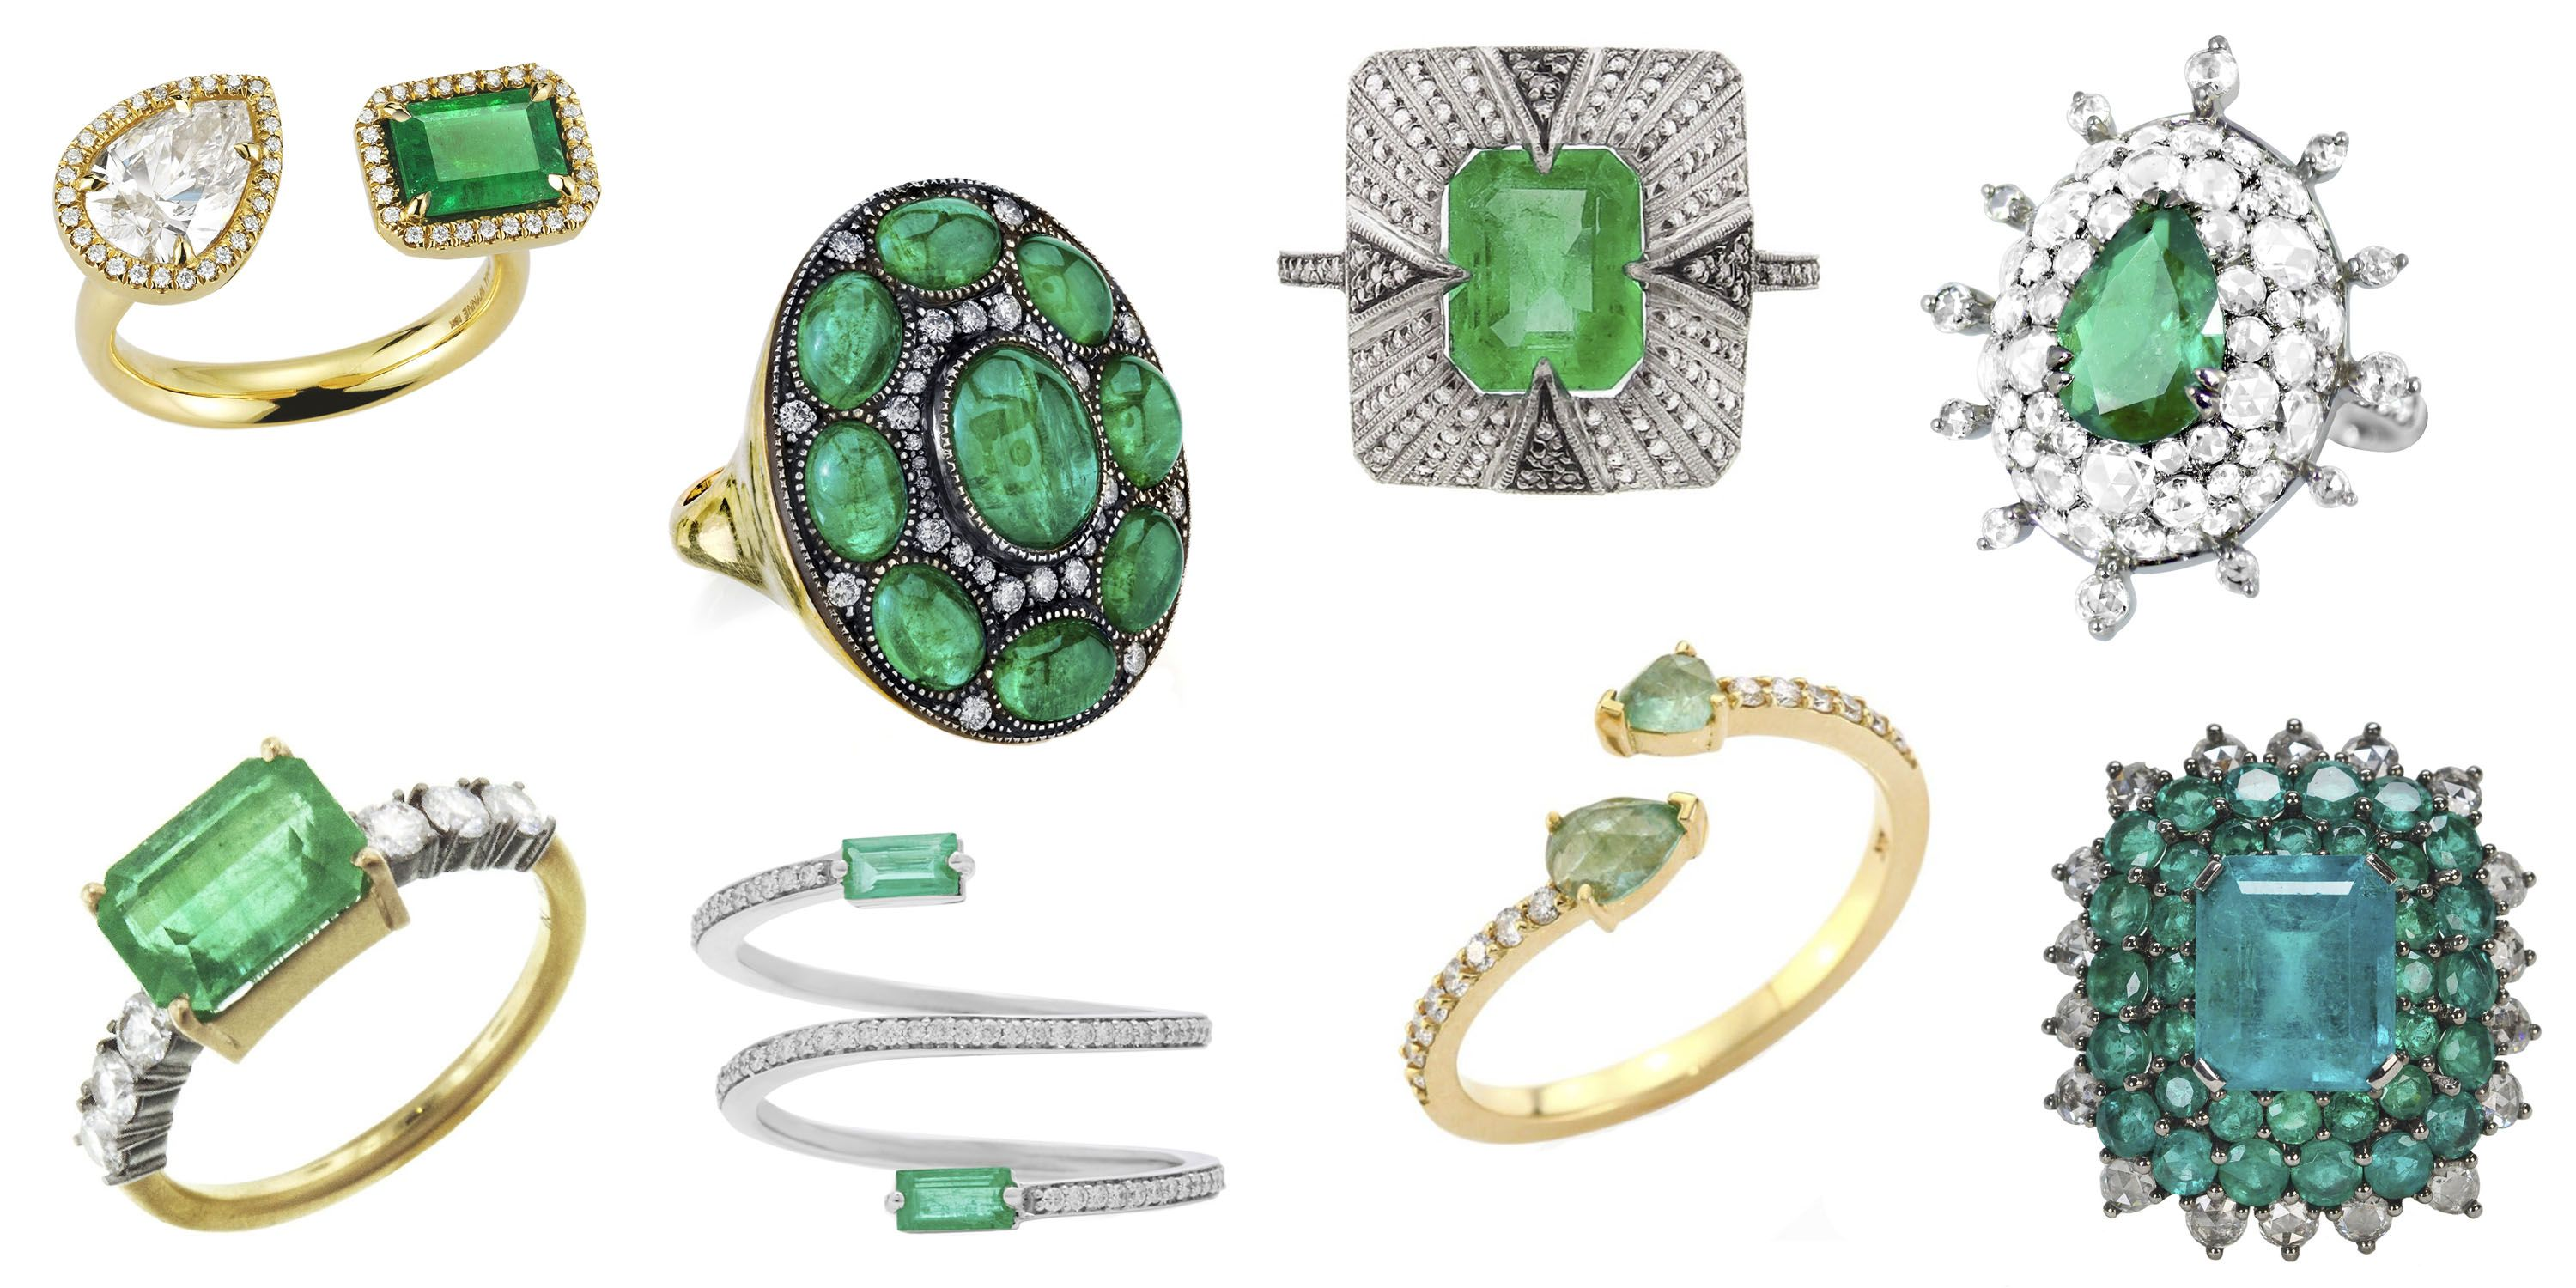 emerald minor stones shoulder colombian ring in set enhancement fancy platinum david rings emeral with diamond product cut white morris